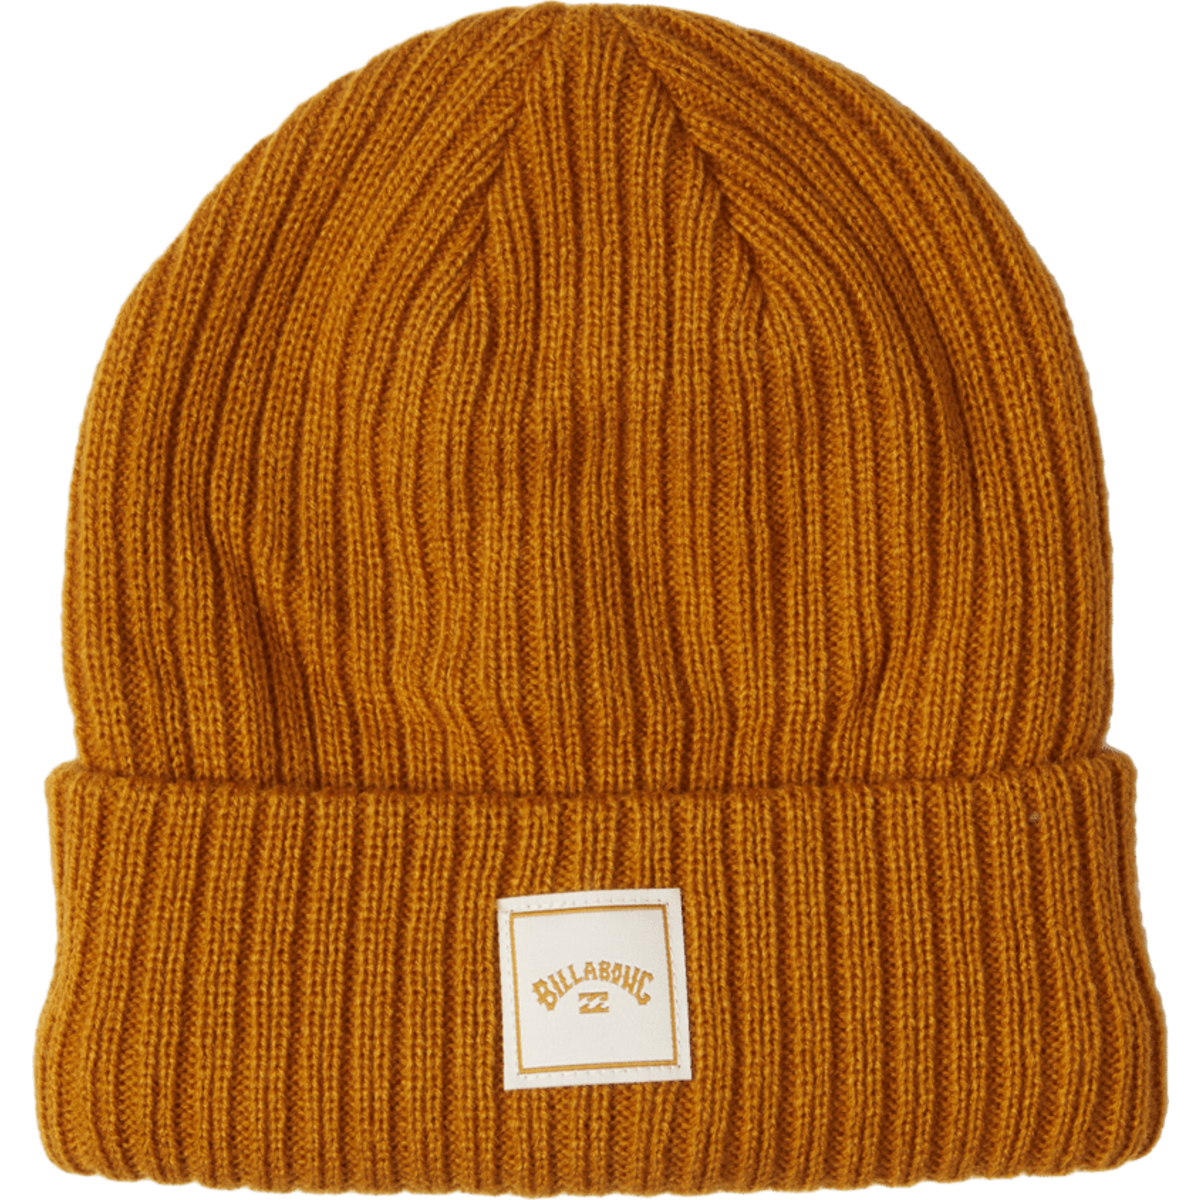 Billabong Ride Beanie